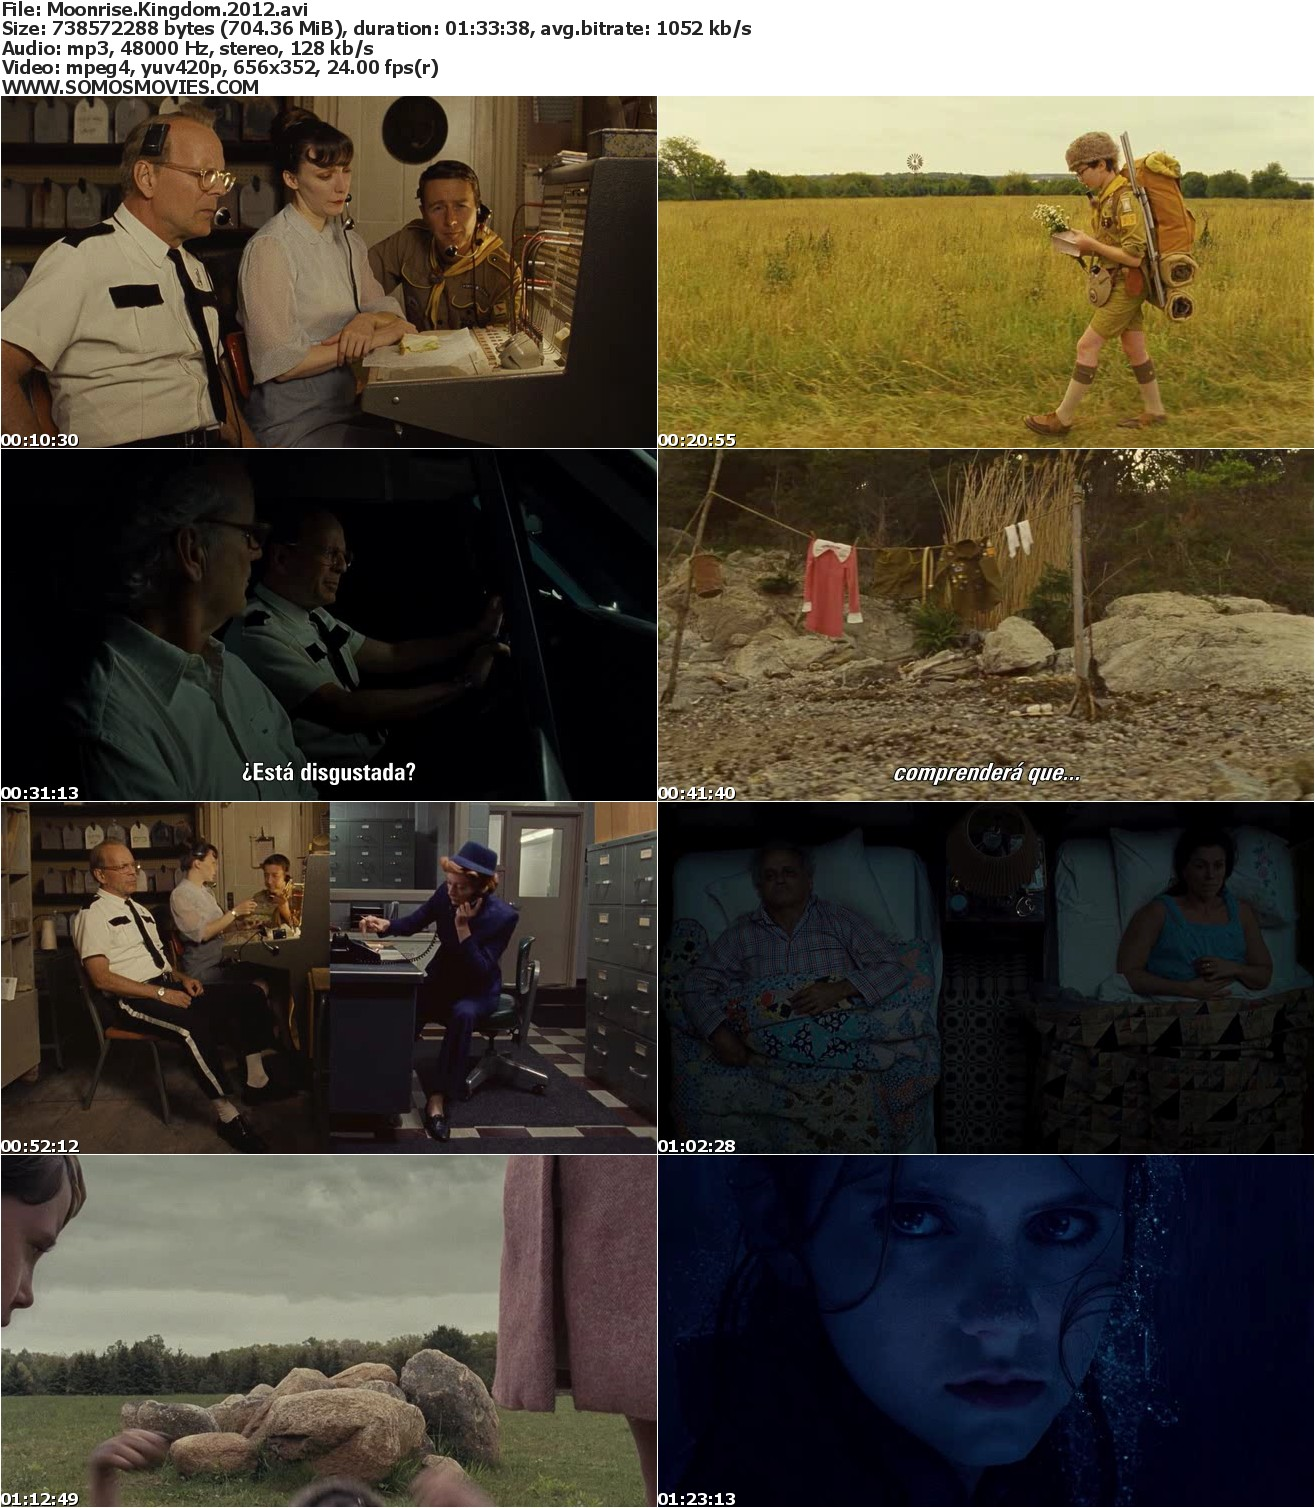 Moonrise Kingdom (2012) Subtitulada, Moonrise Kingdom (2012) Audio